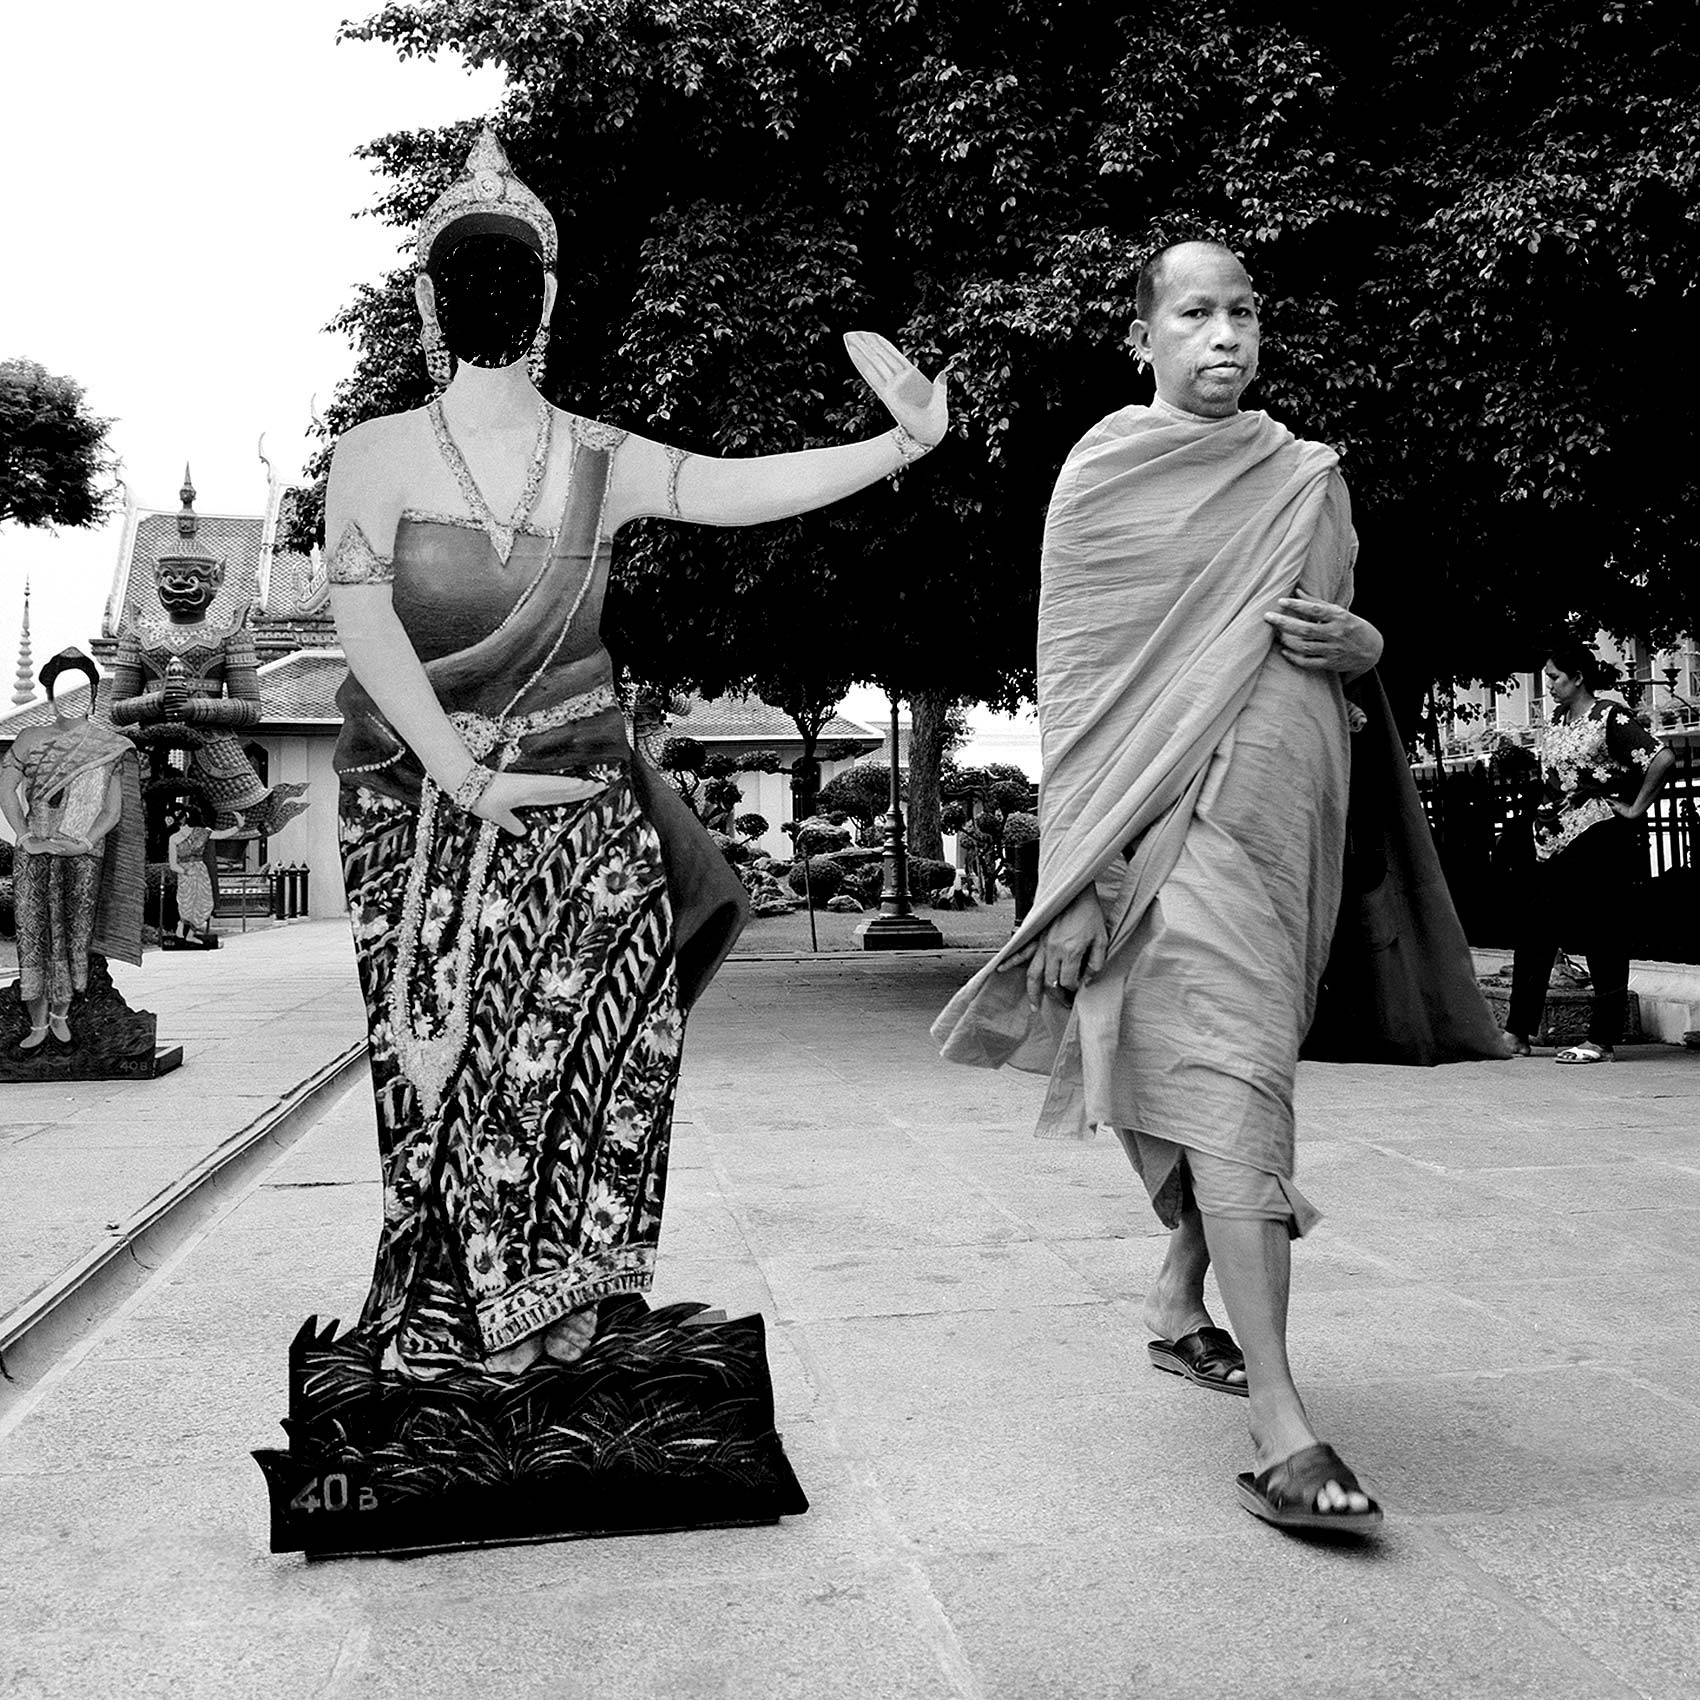 a-monk-walks-past-a-life-size-cut-out-of-a-thai-woman-in-traditional-dress-in-bangkok